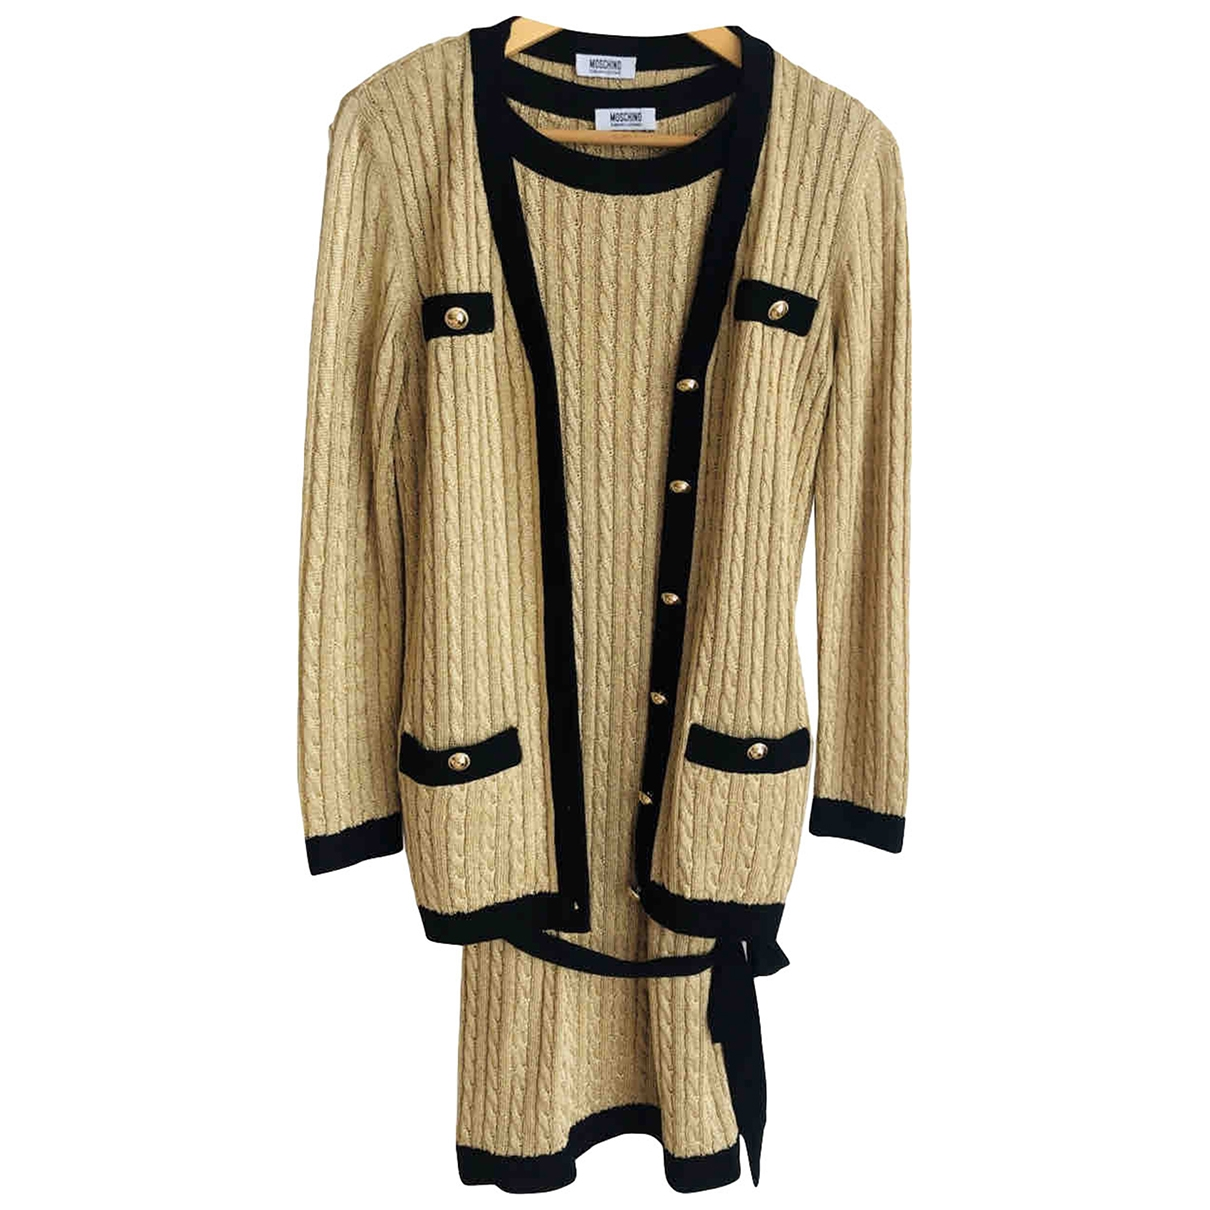 Moschino Cheap And Chic \N Multicolour Knitwear for Women 38 FR